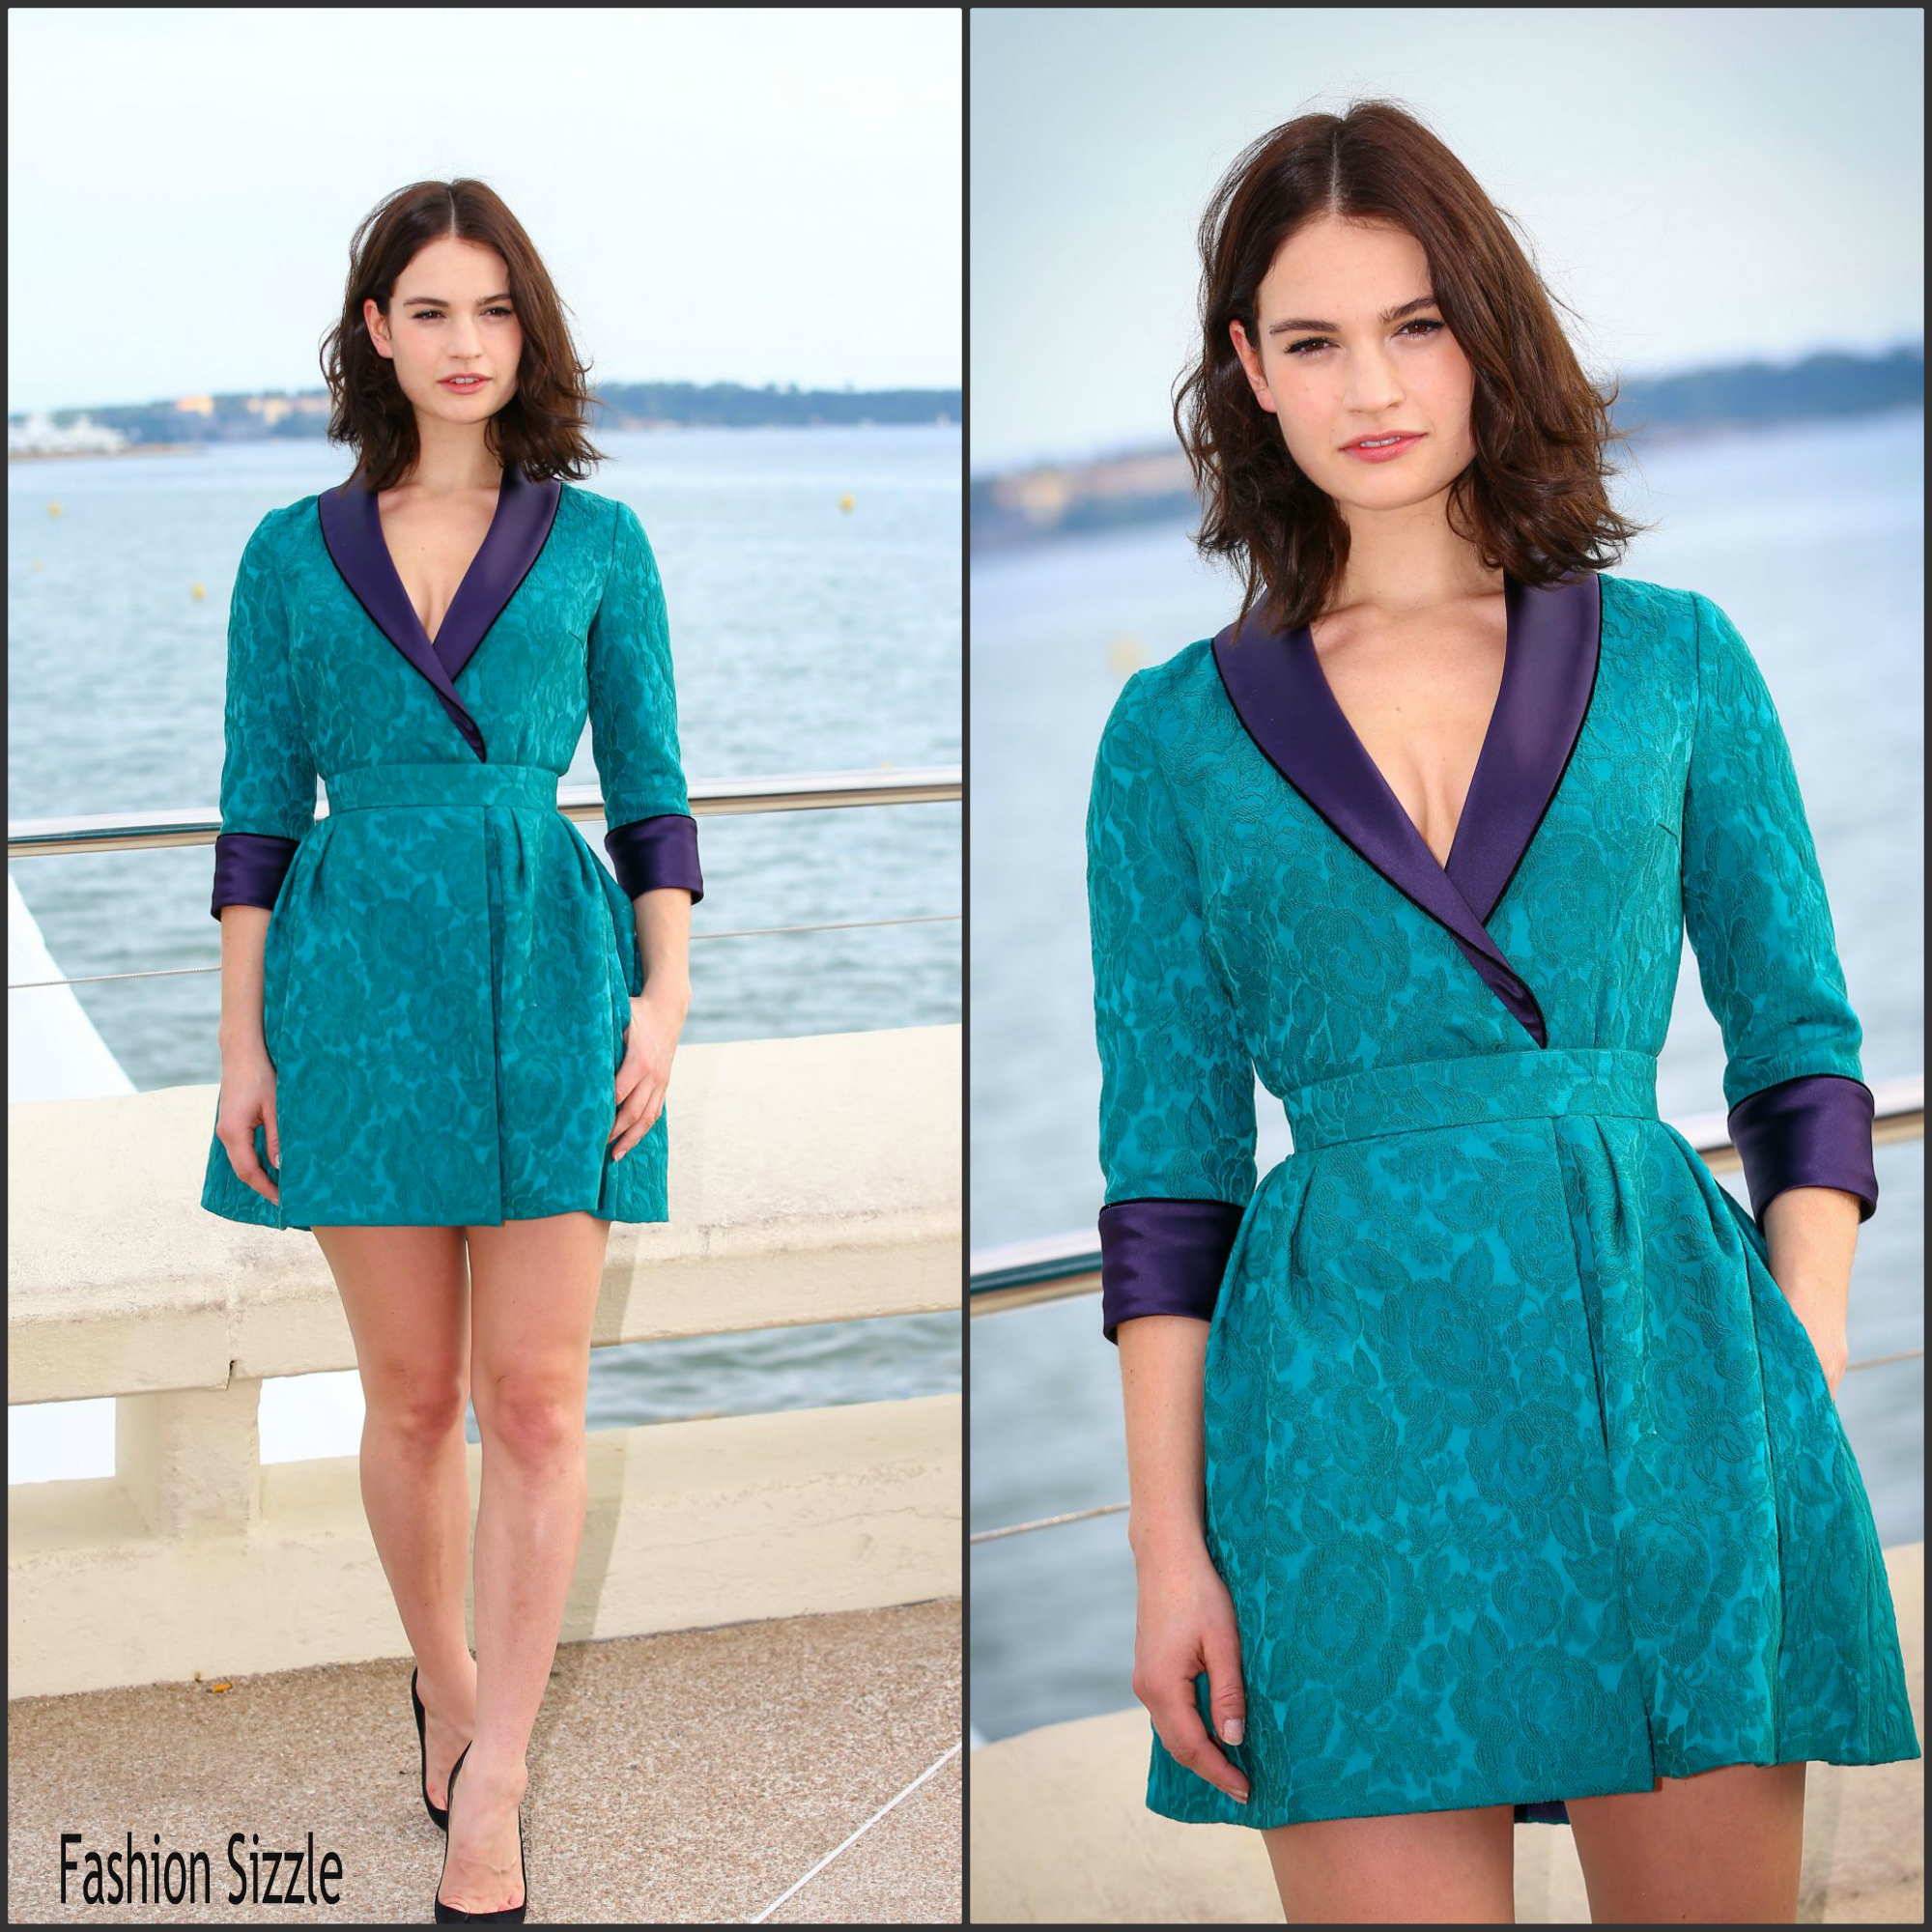 lily-james-in-ulyana-sergeenko-demmi-couture-at-war-and-peace-cannes-photocall